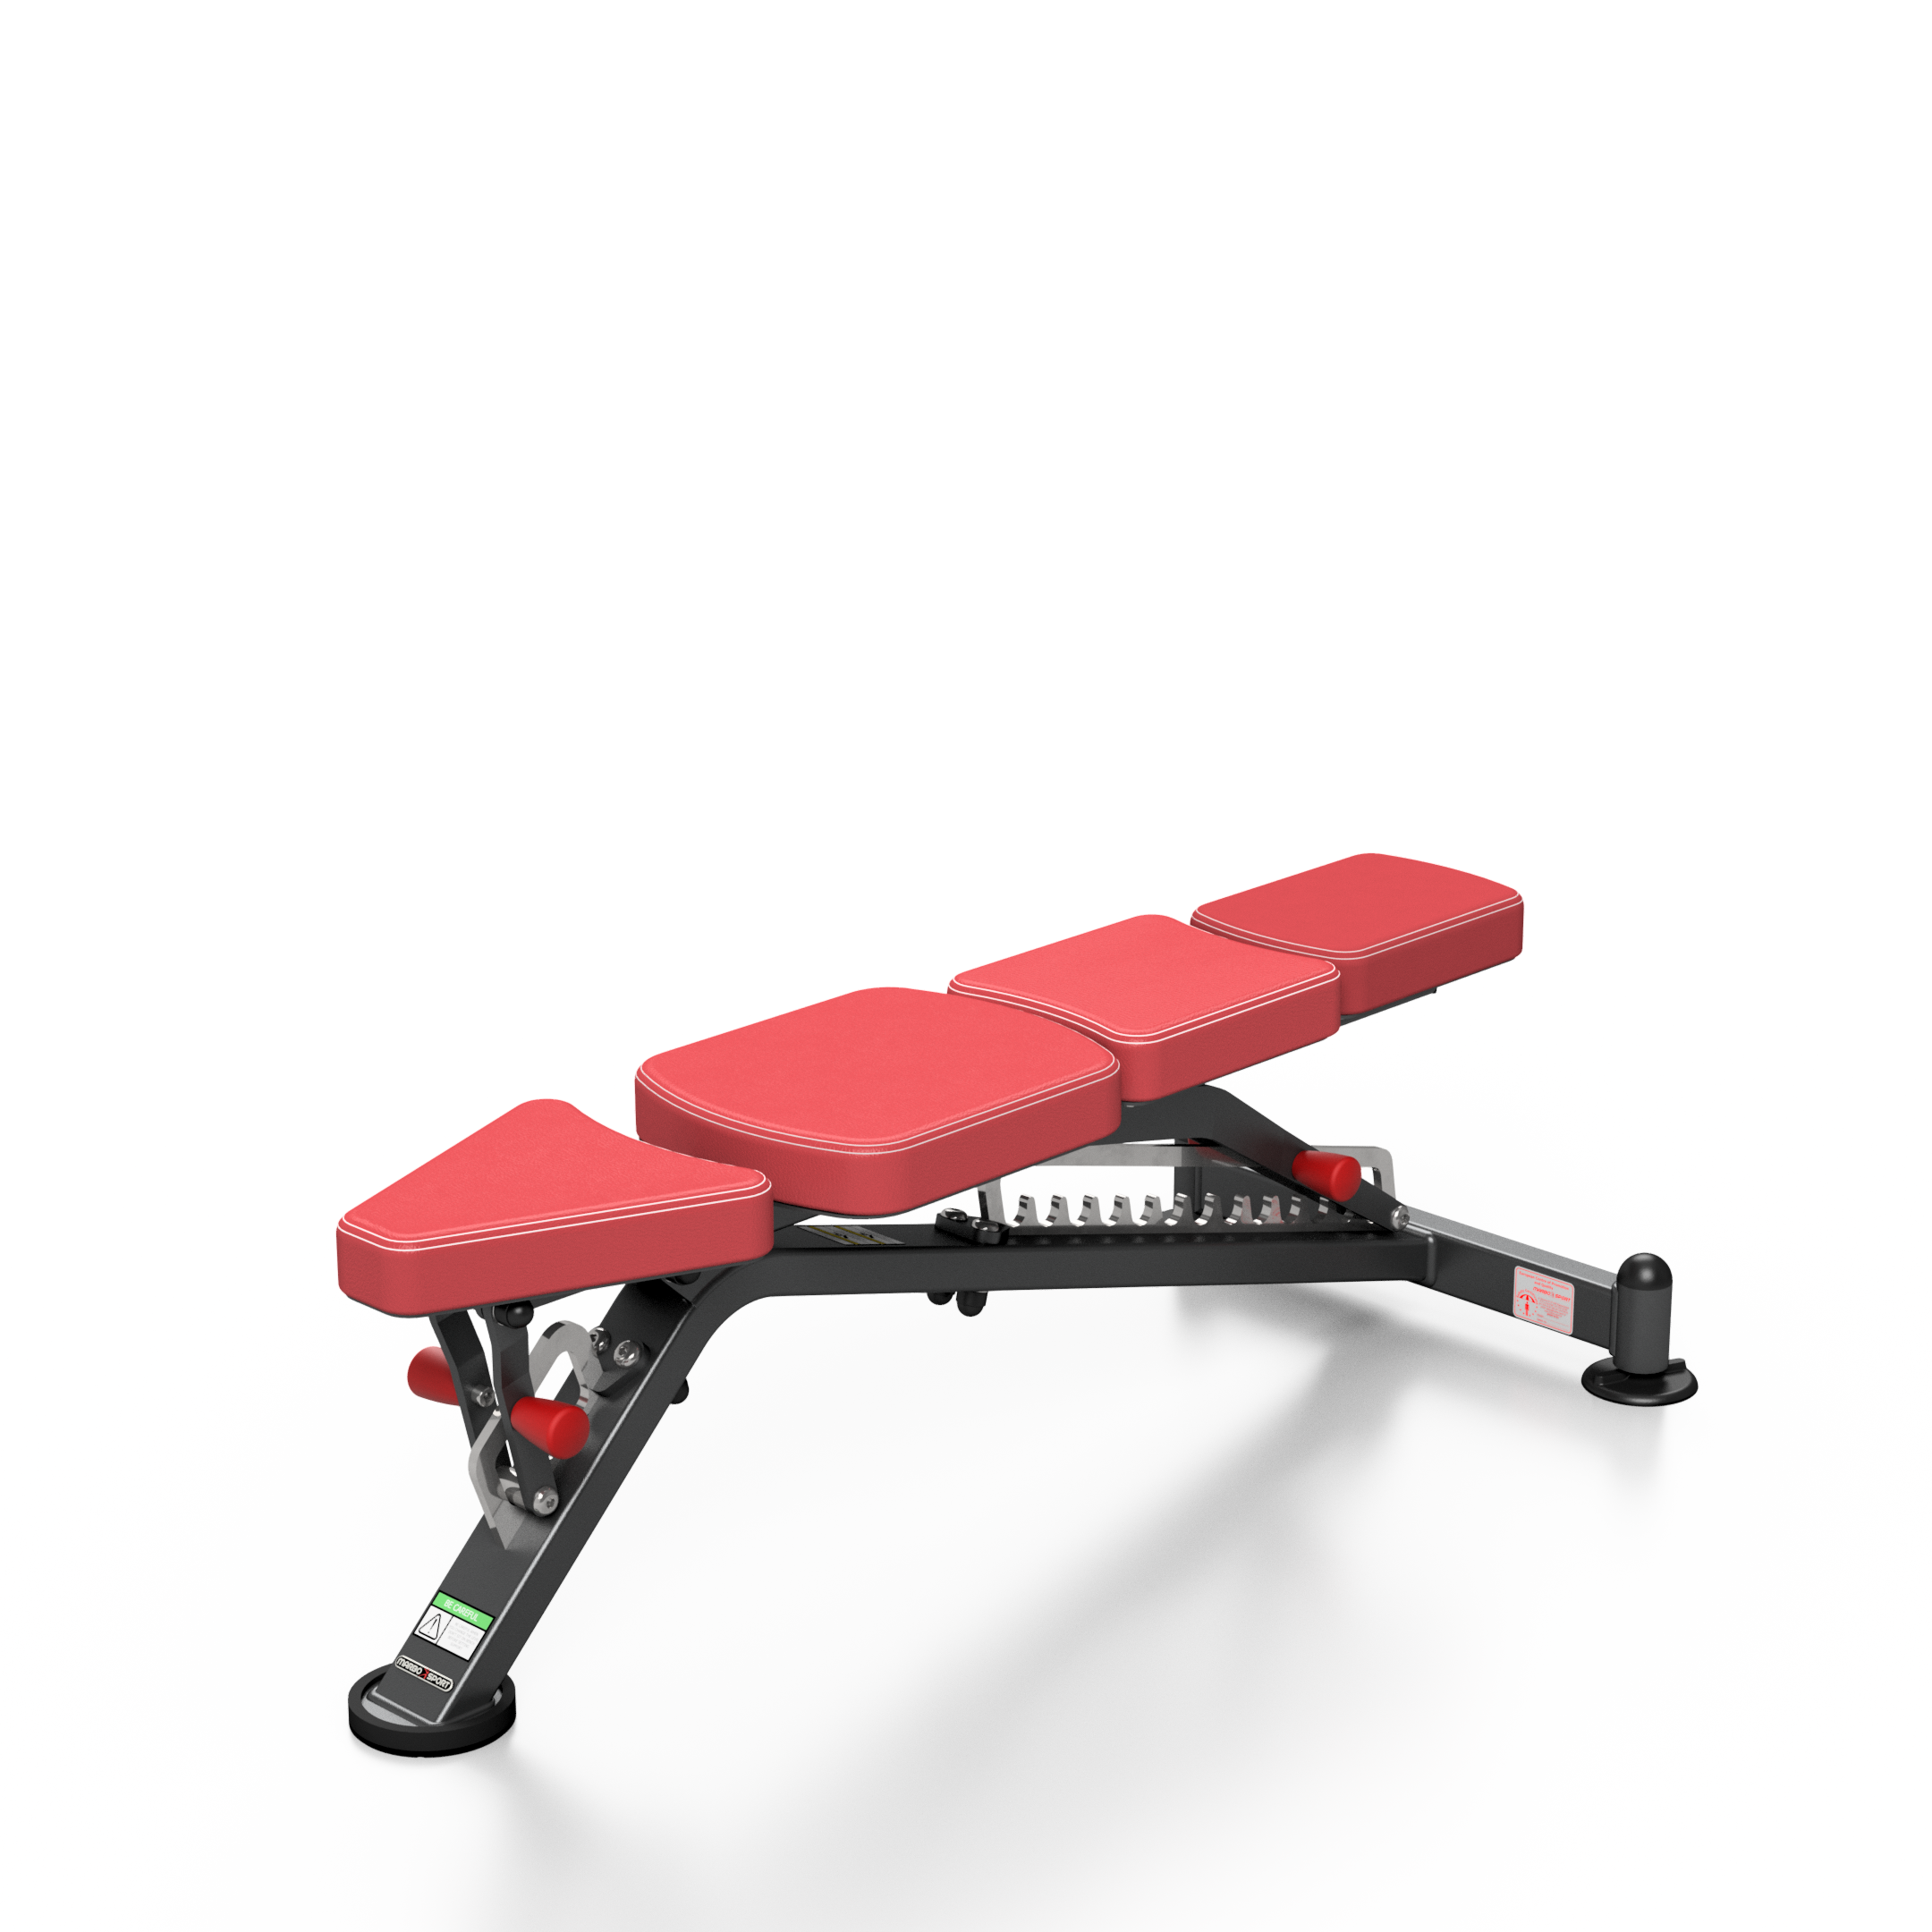 Adjustable Bench Mp L202 Marbo Sport B2b Marbo